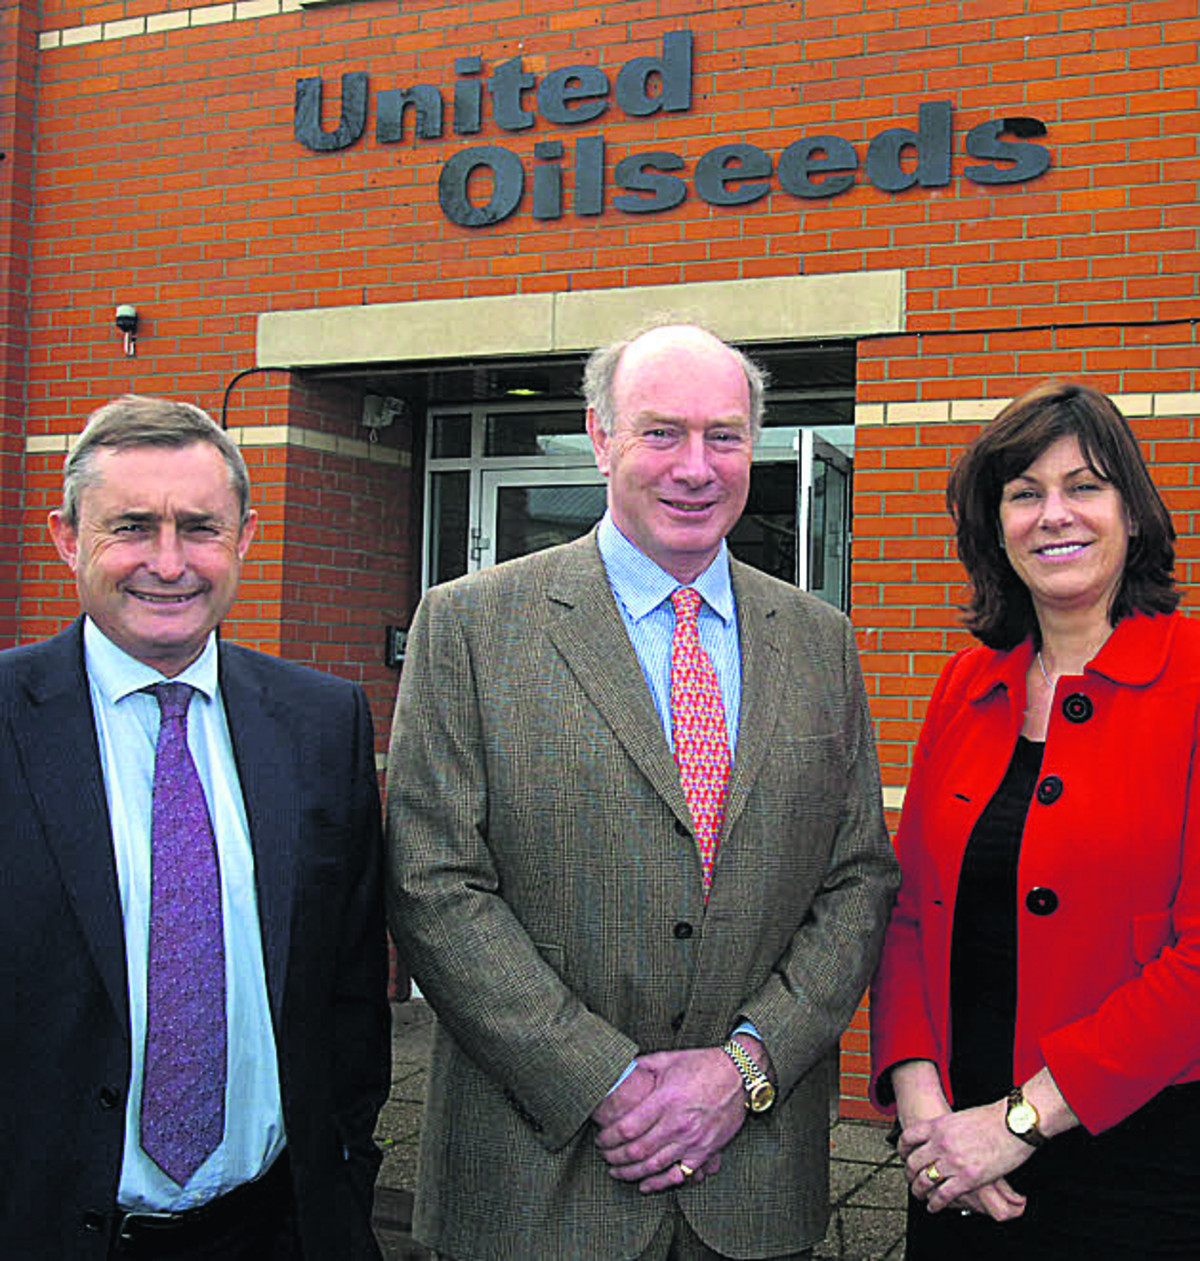 Devizes MP Claire Perry with United Oilseeds managing director Chris Baldwin and John Elliot, chairman